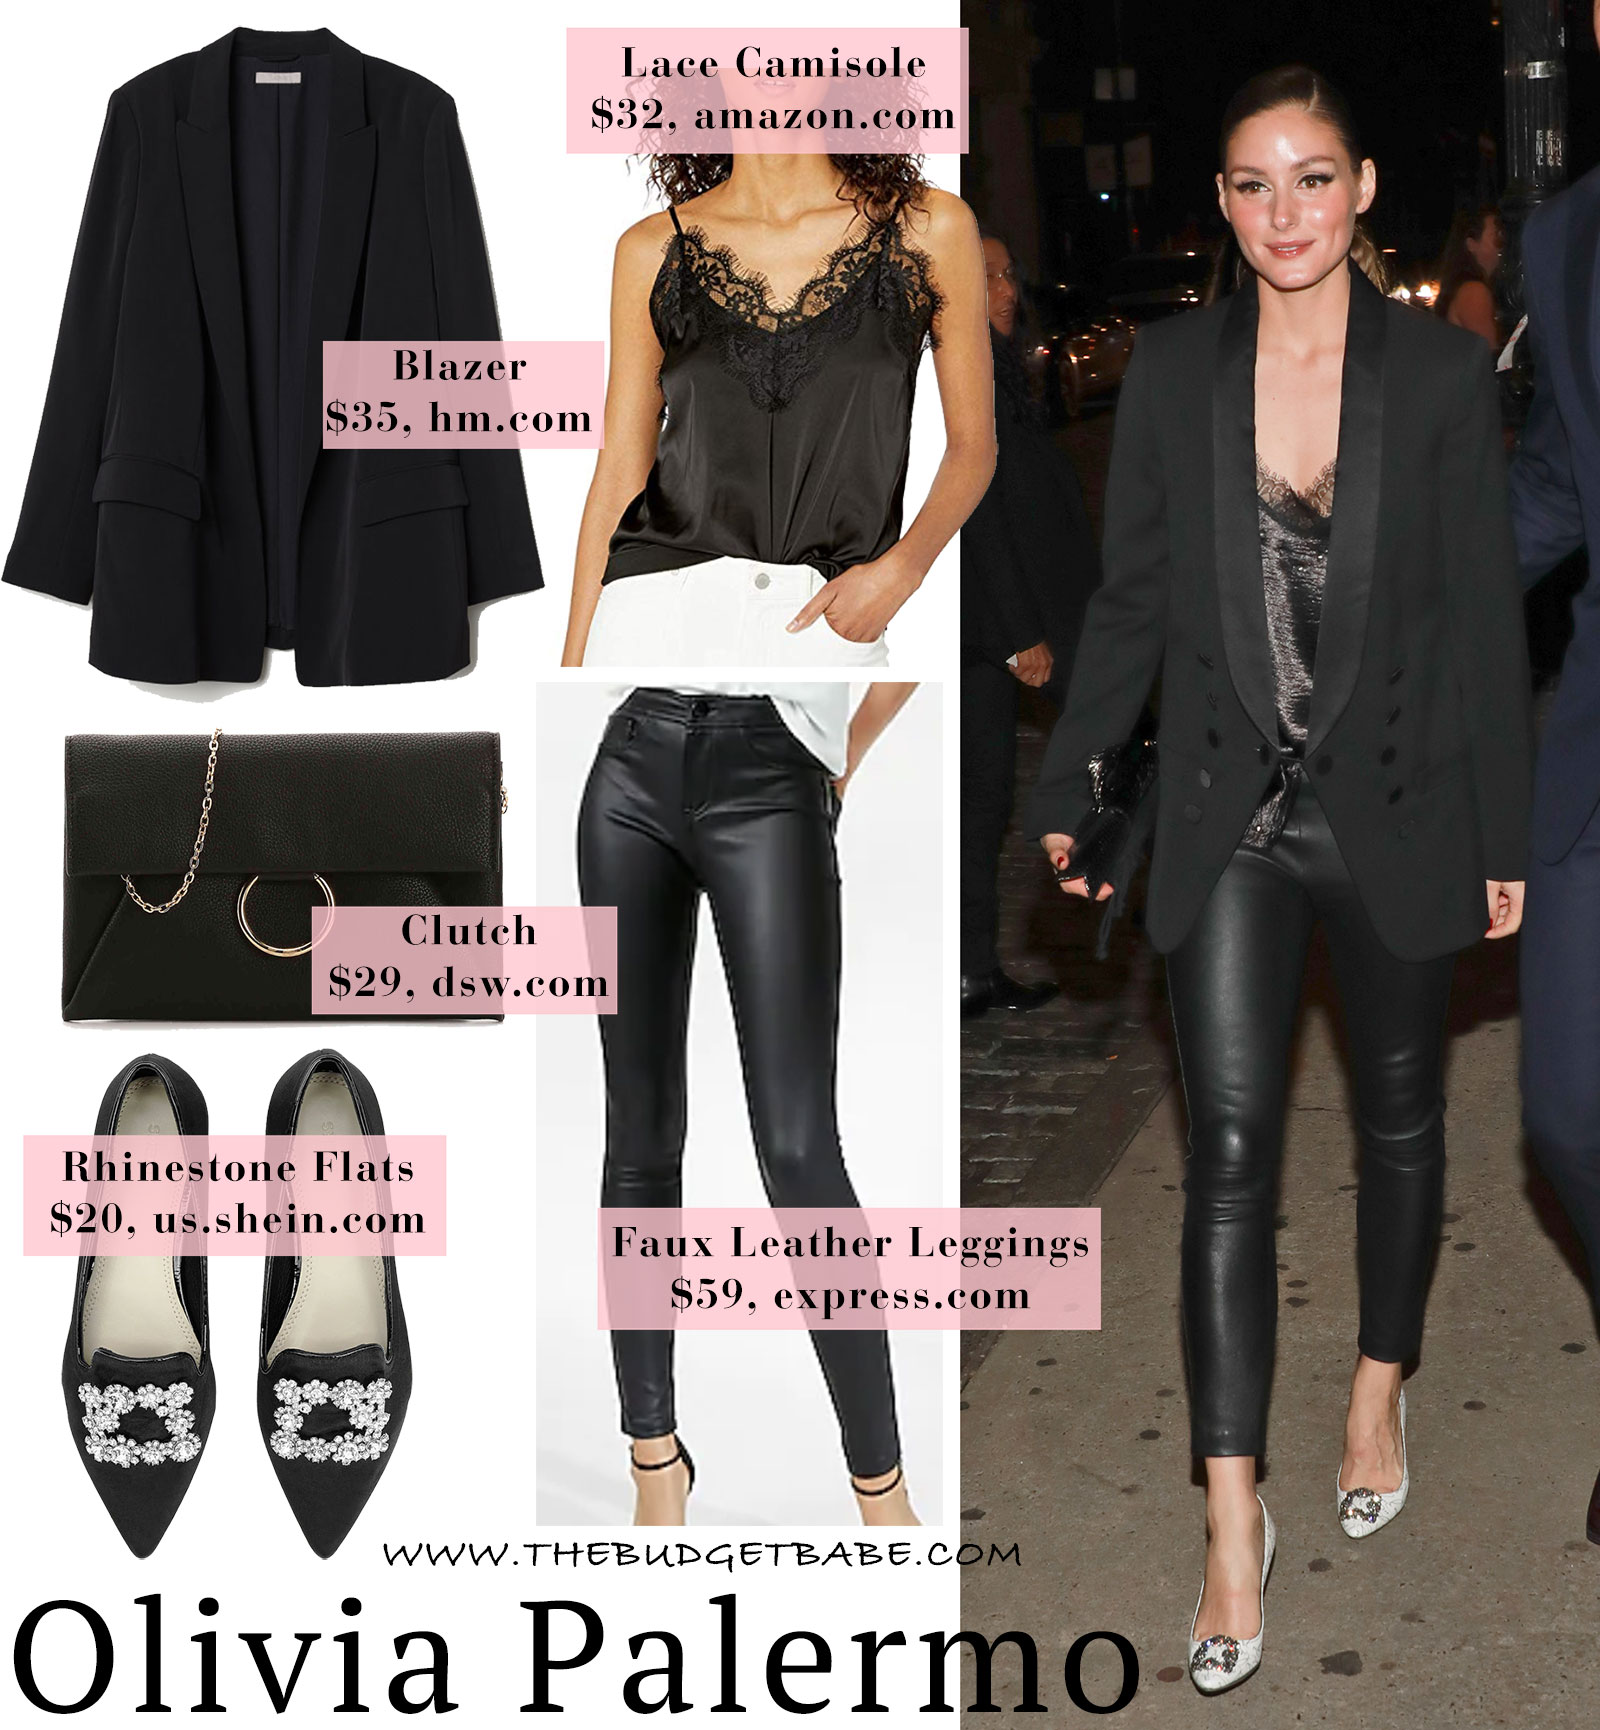 b5072a6e091943 Olivia Palermo's Leather Leggings and Tuxedo Blazer Look for Less